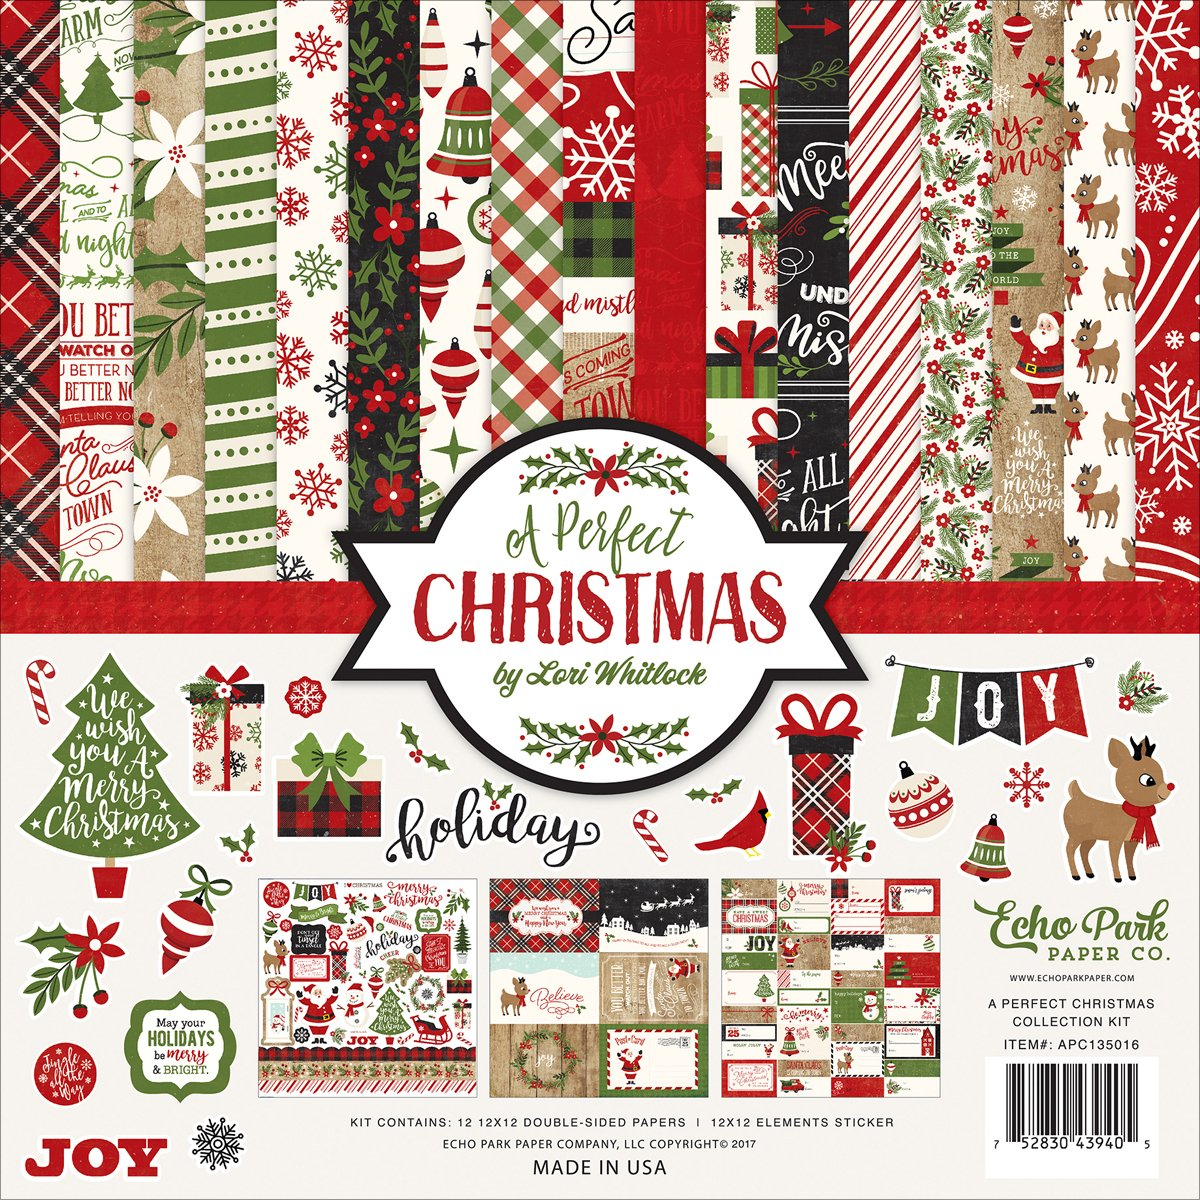 Echo Park Paper Company a Perfect Christmas Collection Kit APC135016